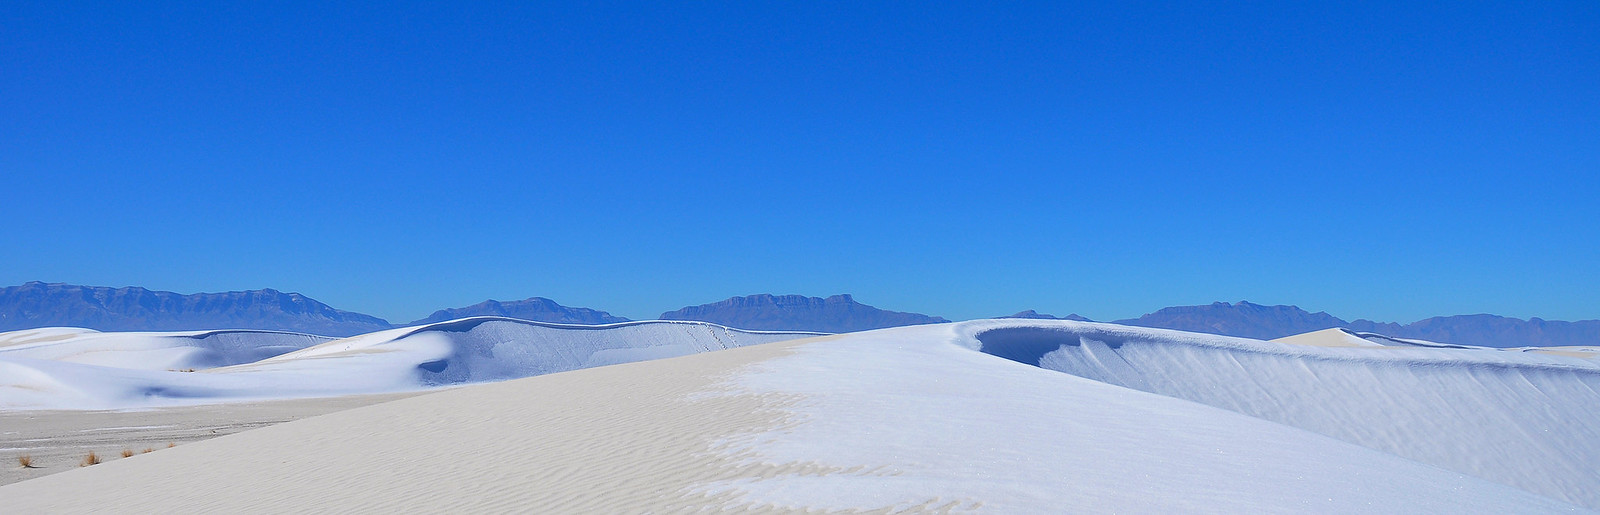 White Sands - Outer Space Blue (Explored 25 jan 2015, # 183)